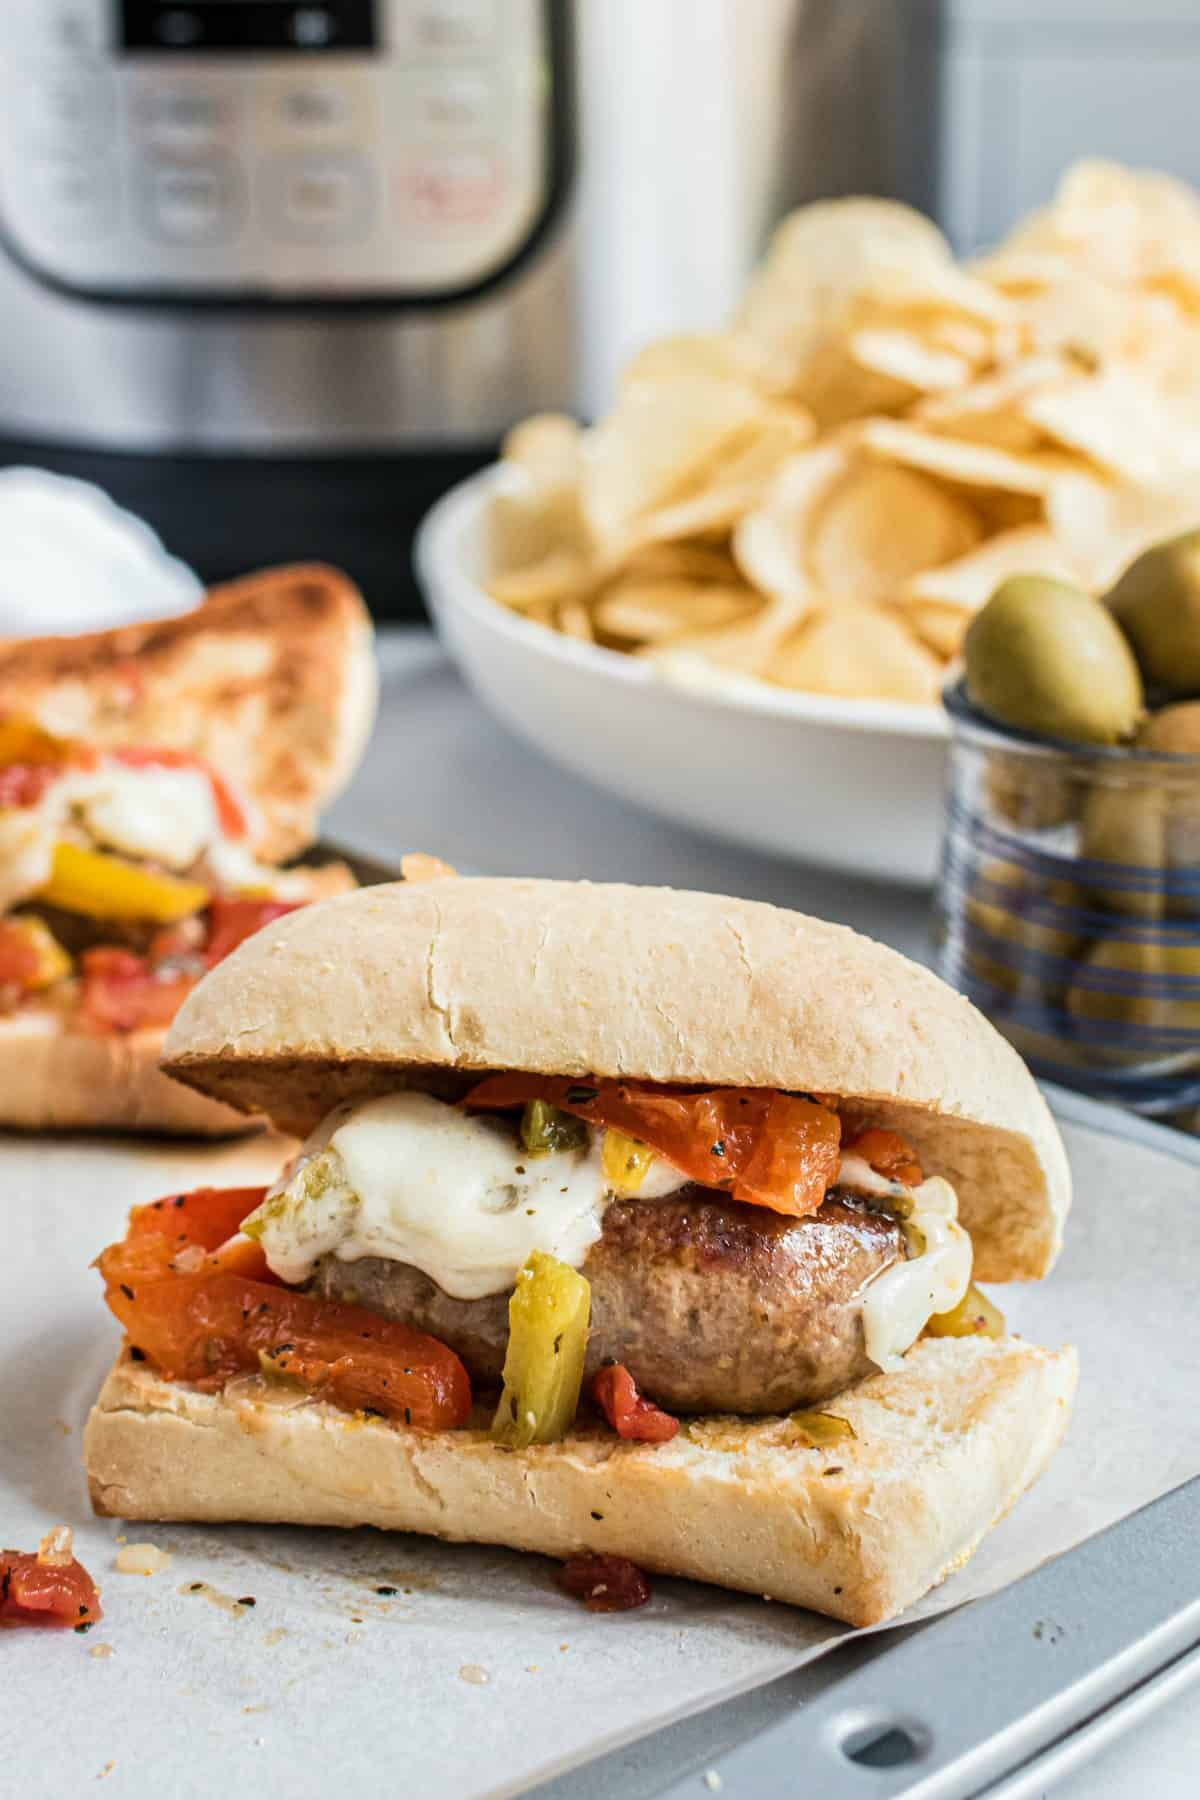 Sausage and peppers on a french roll with chips, olives, and pressure cooker in background.